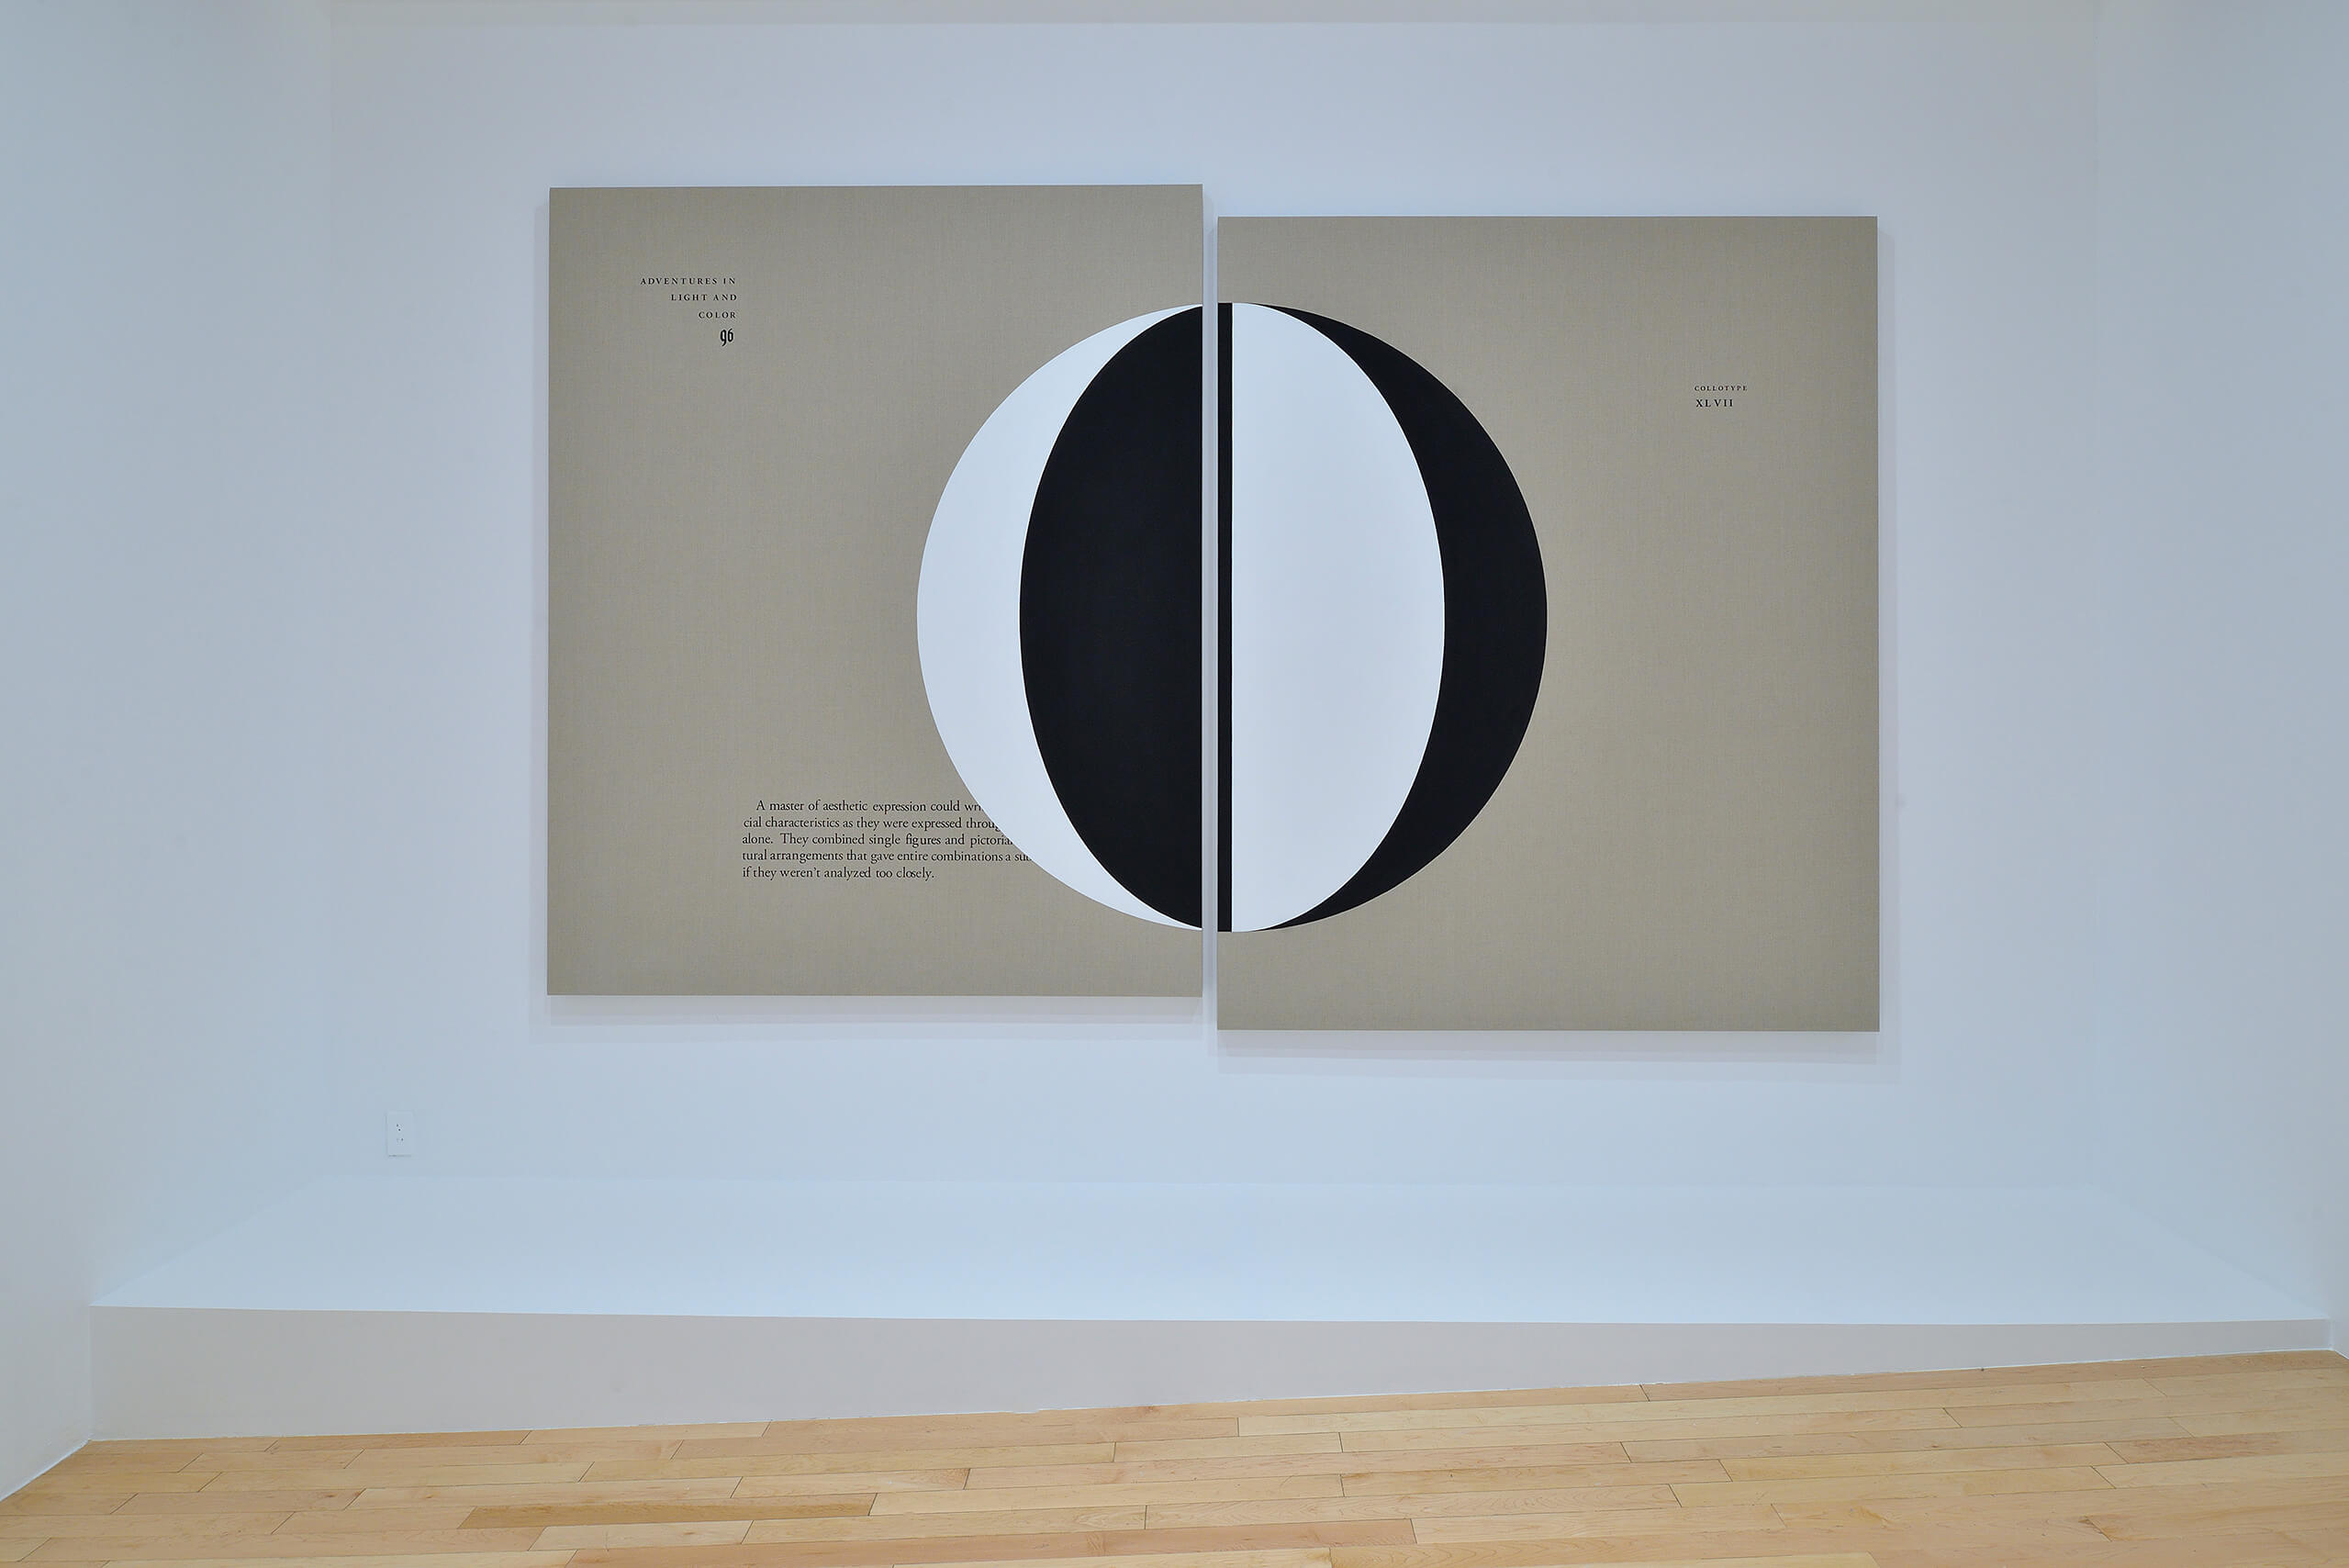 They combined single figures, 2019 | Jose Dávila. Pensar como una montaña | Museo Amparo, Puebla